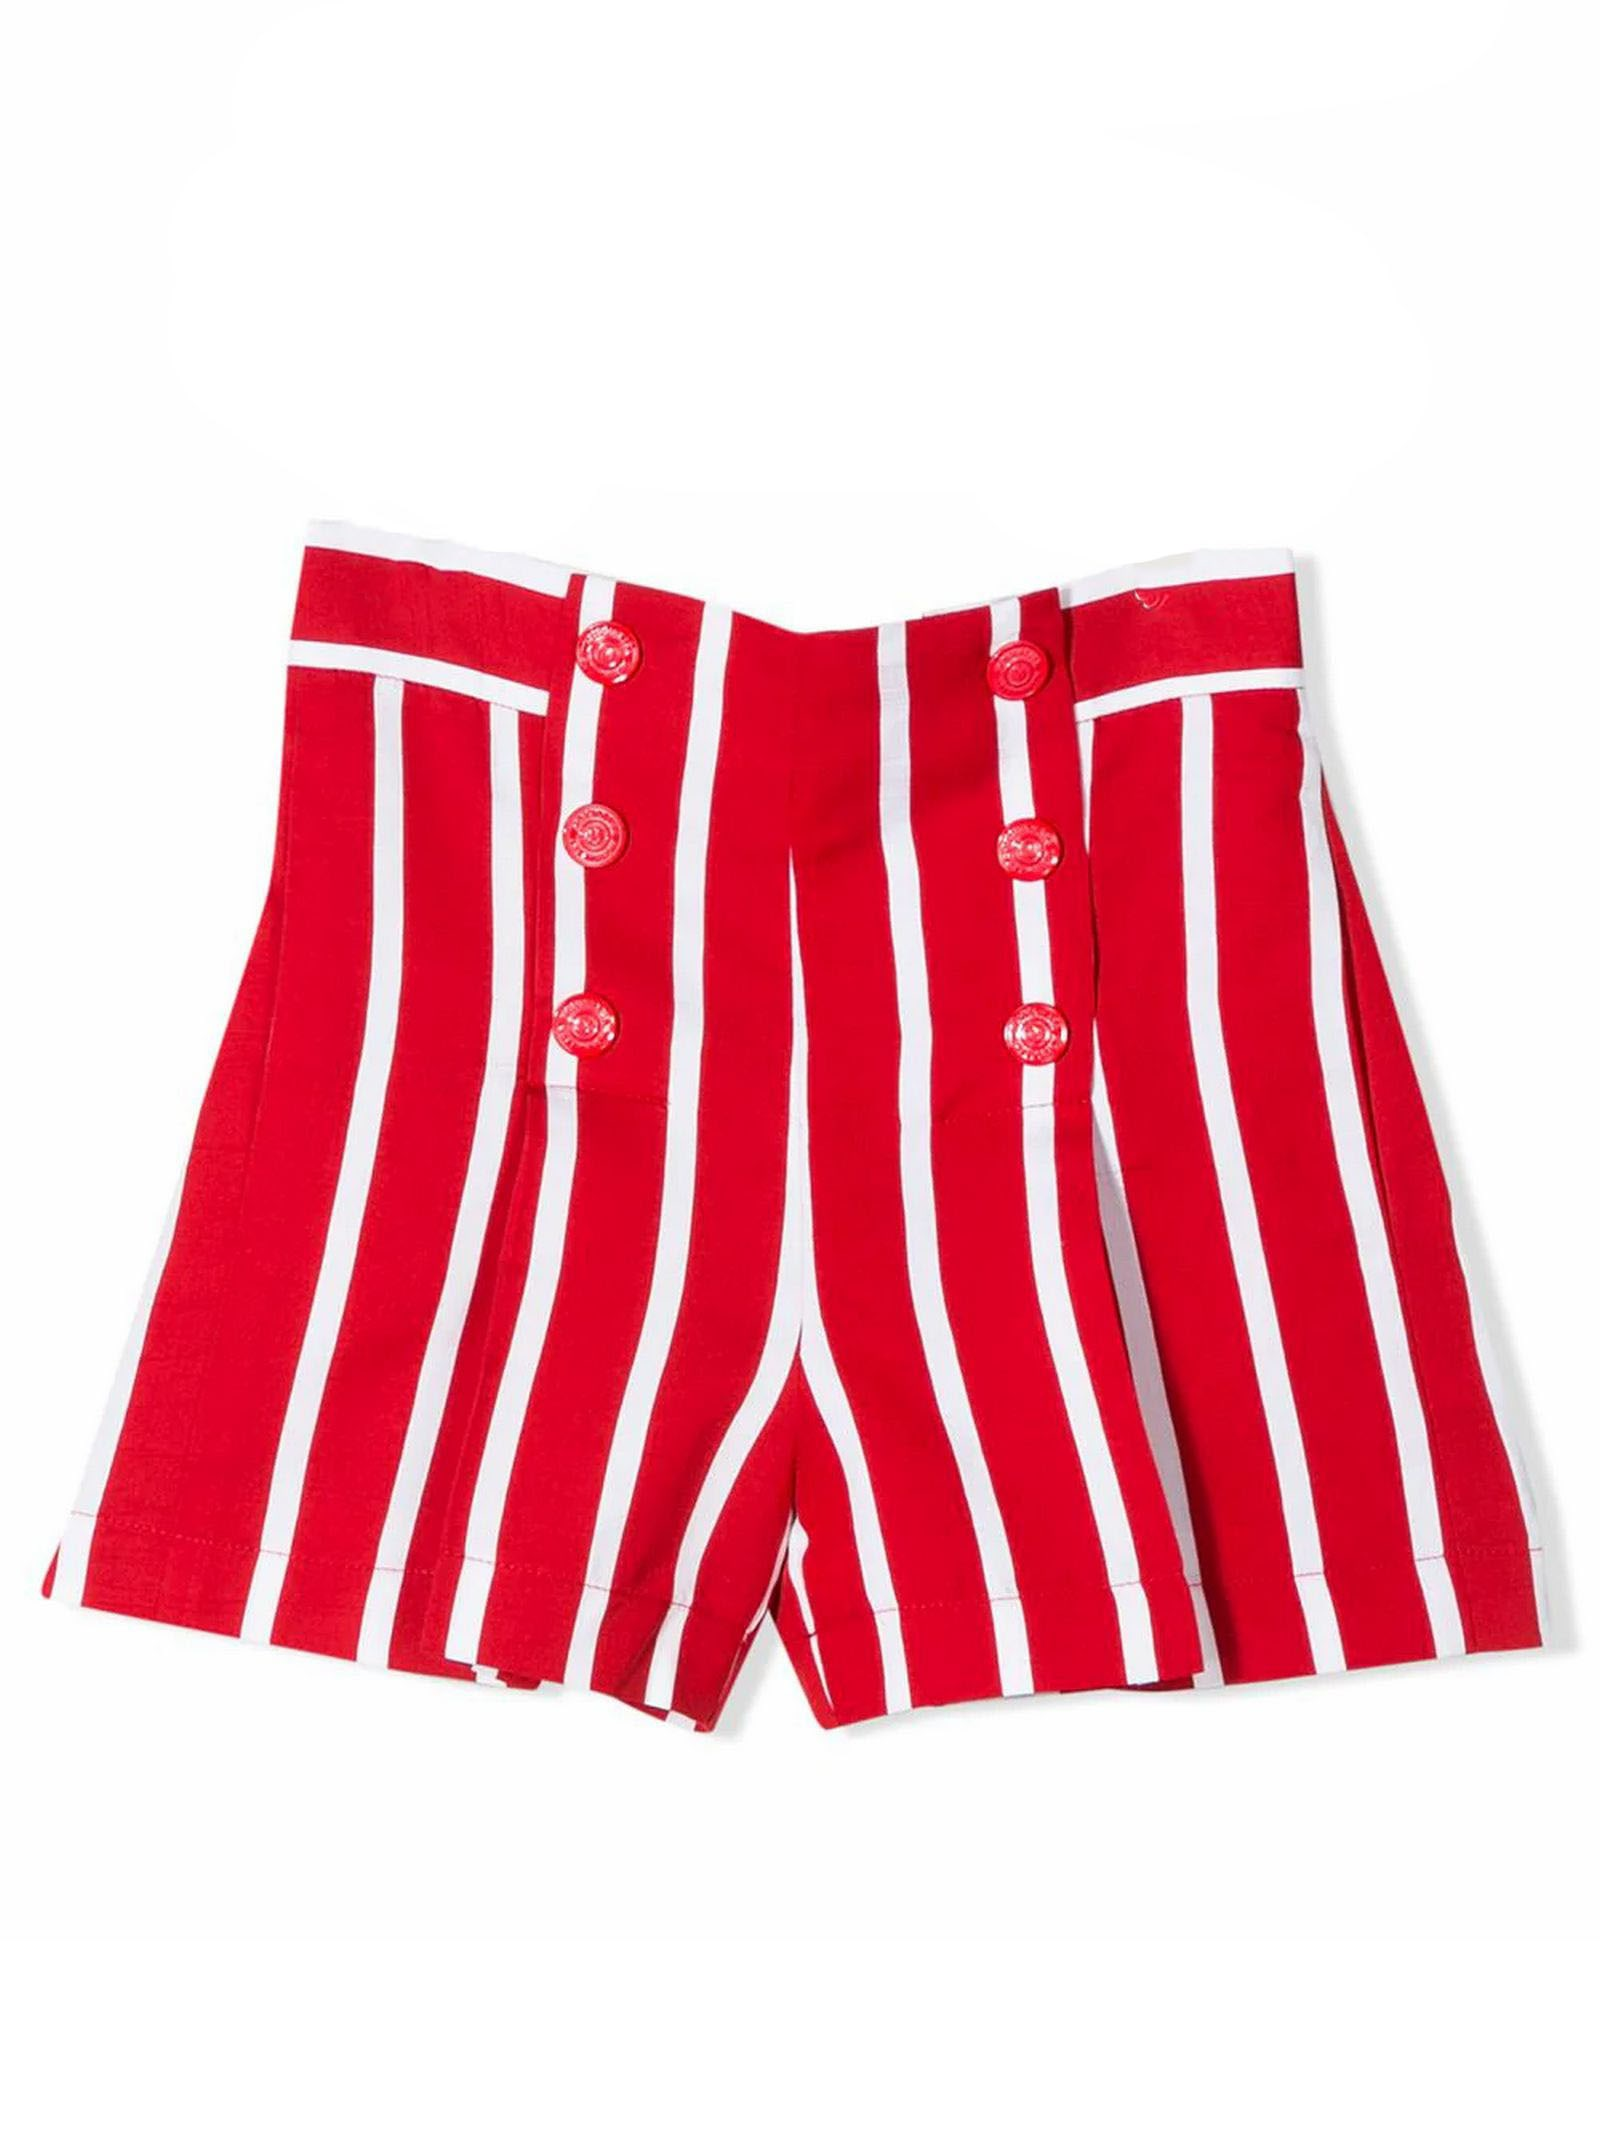 Red And White Cotton Shorts